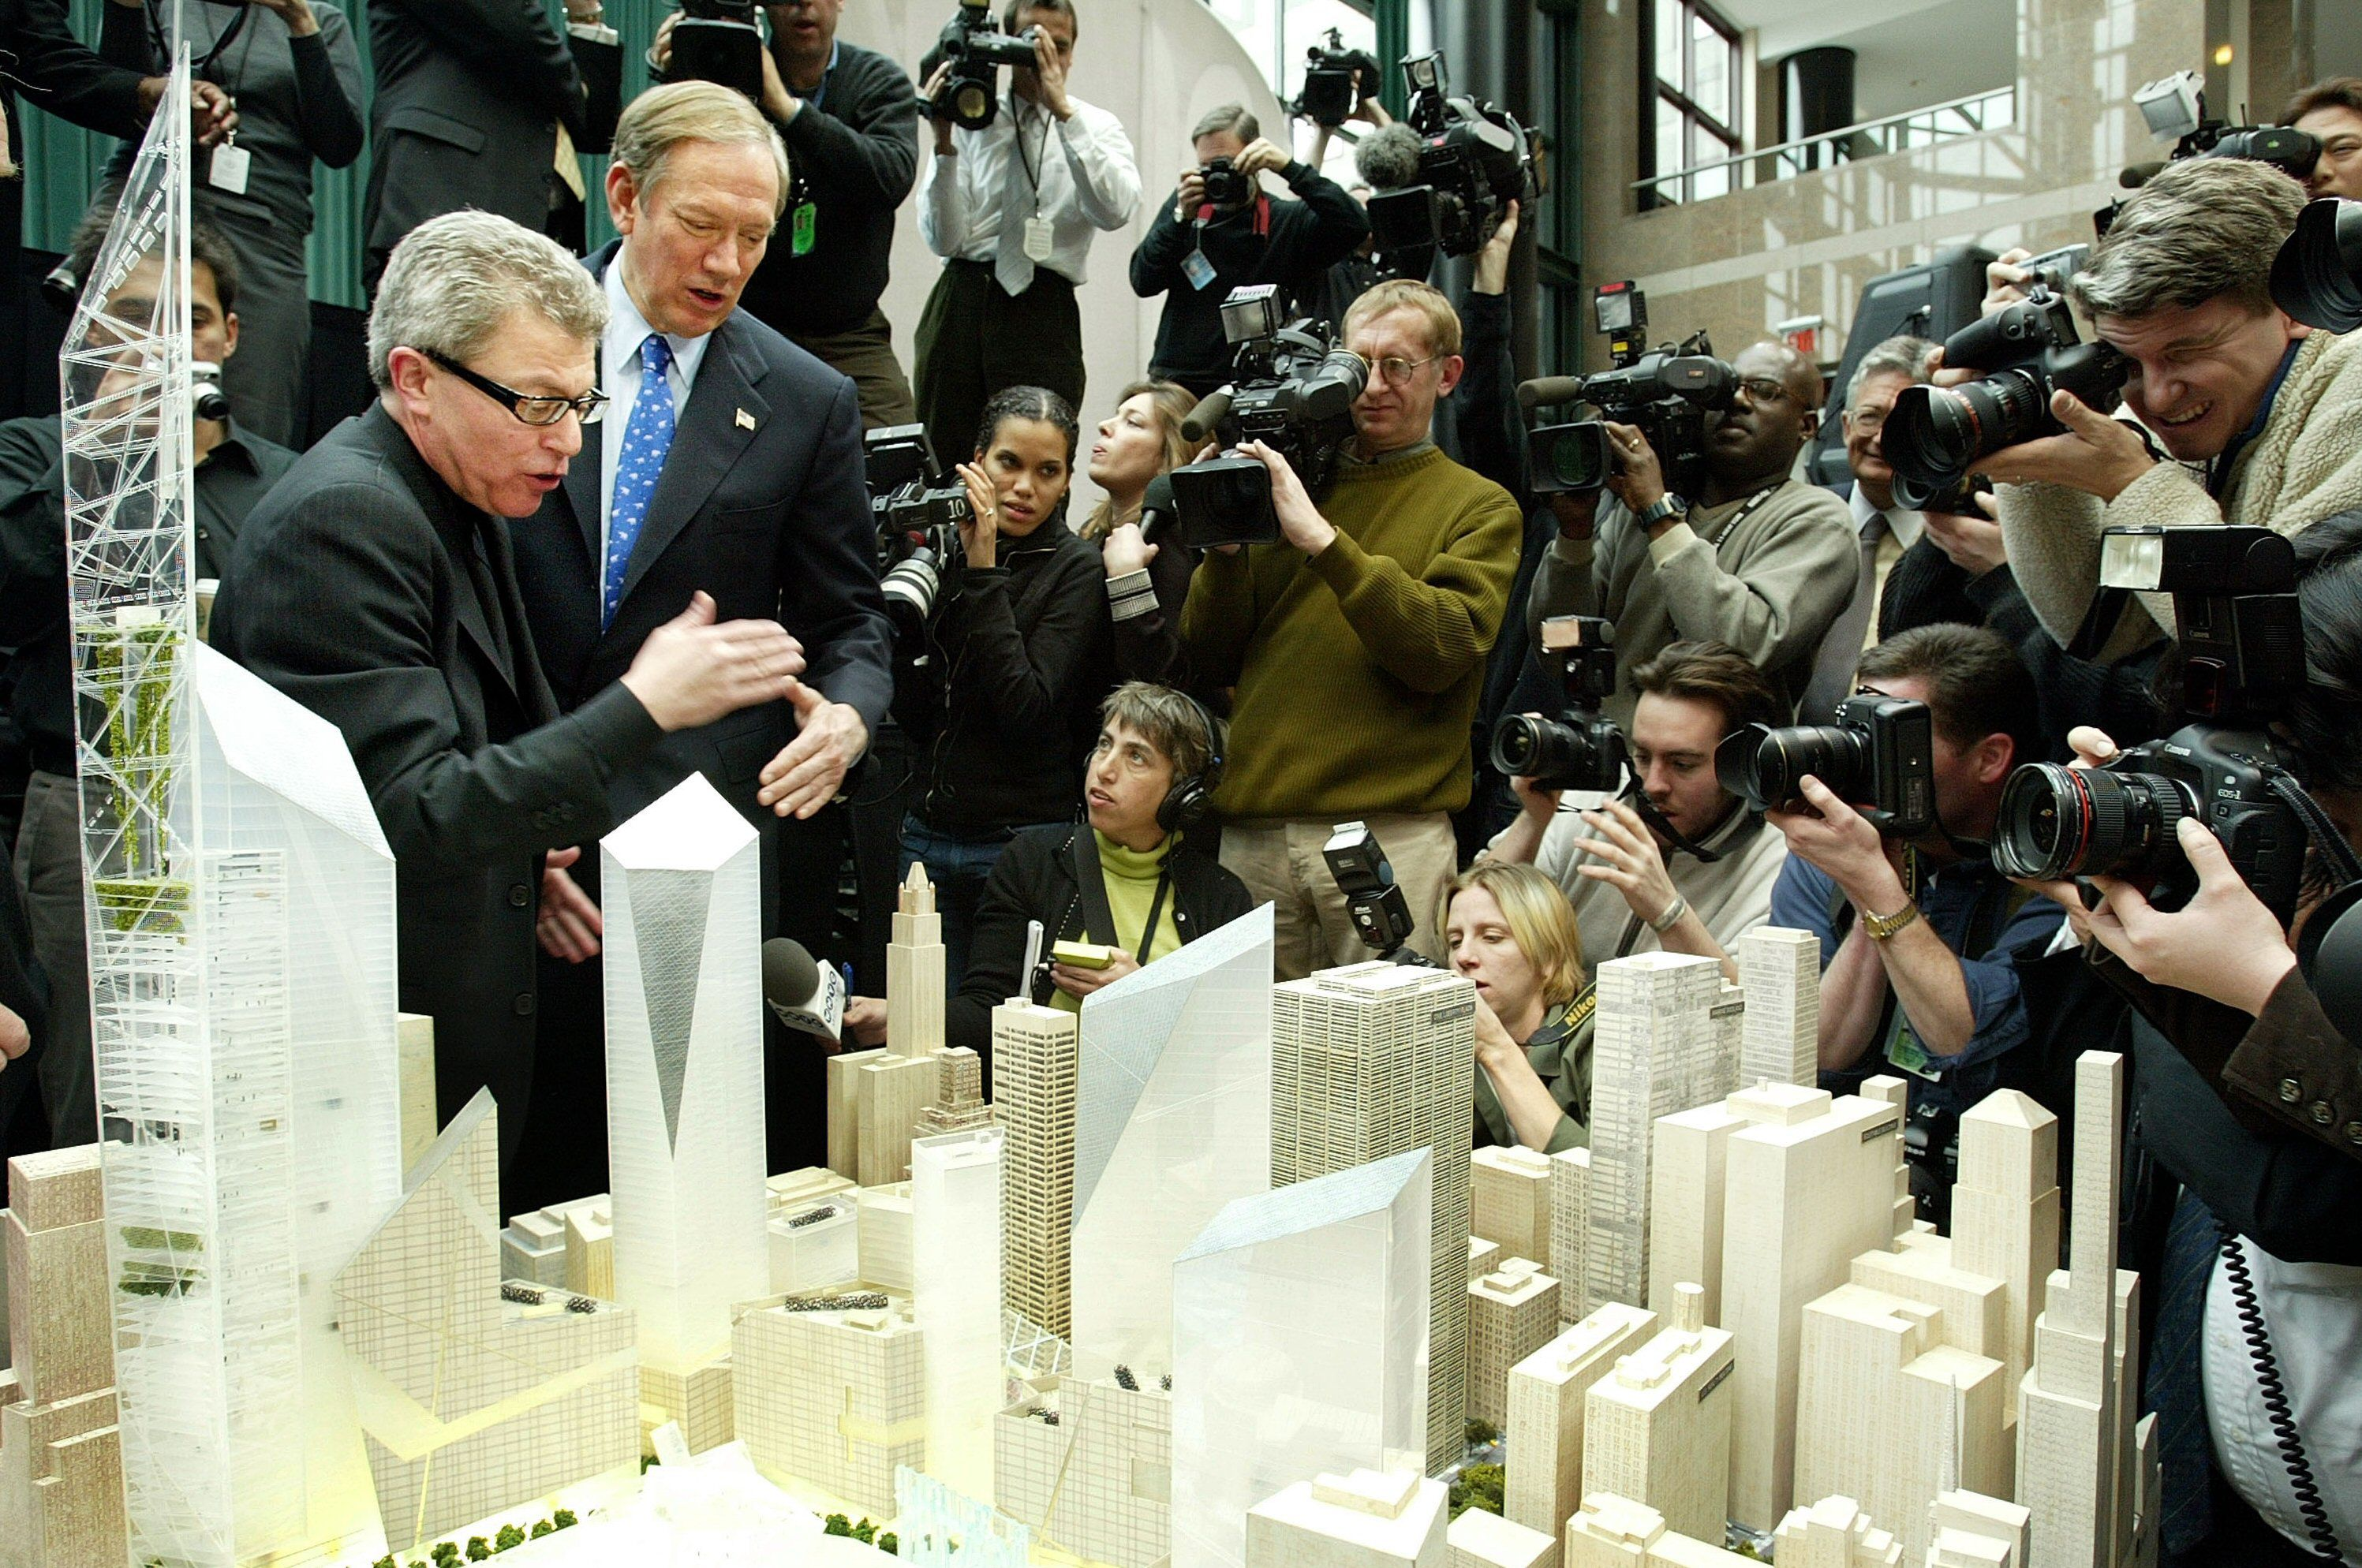 Architect Daniel Libeskind (L) presents his winning design for the World Trade Center site to New York Governor George Pataki (2nd-L) at a media conference